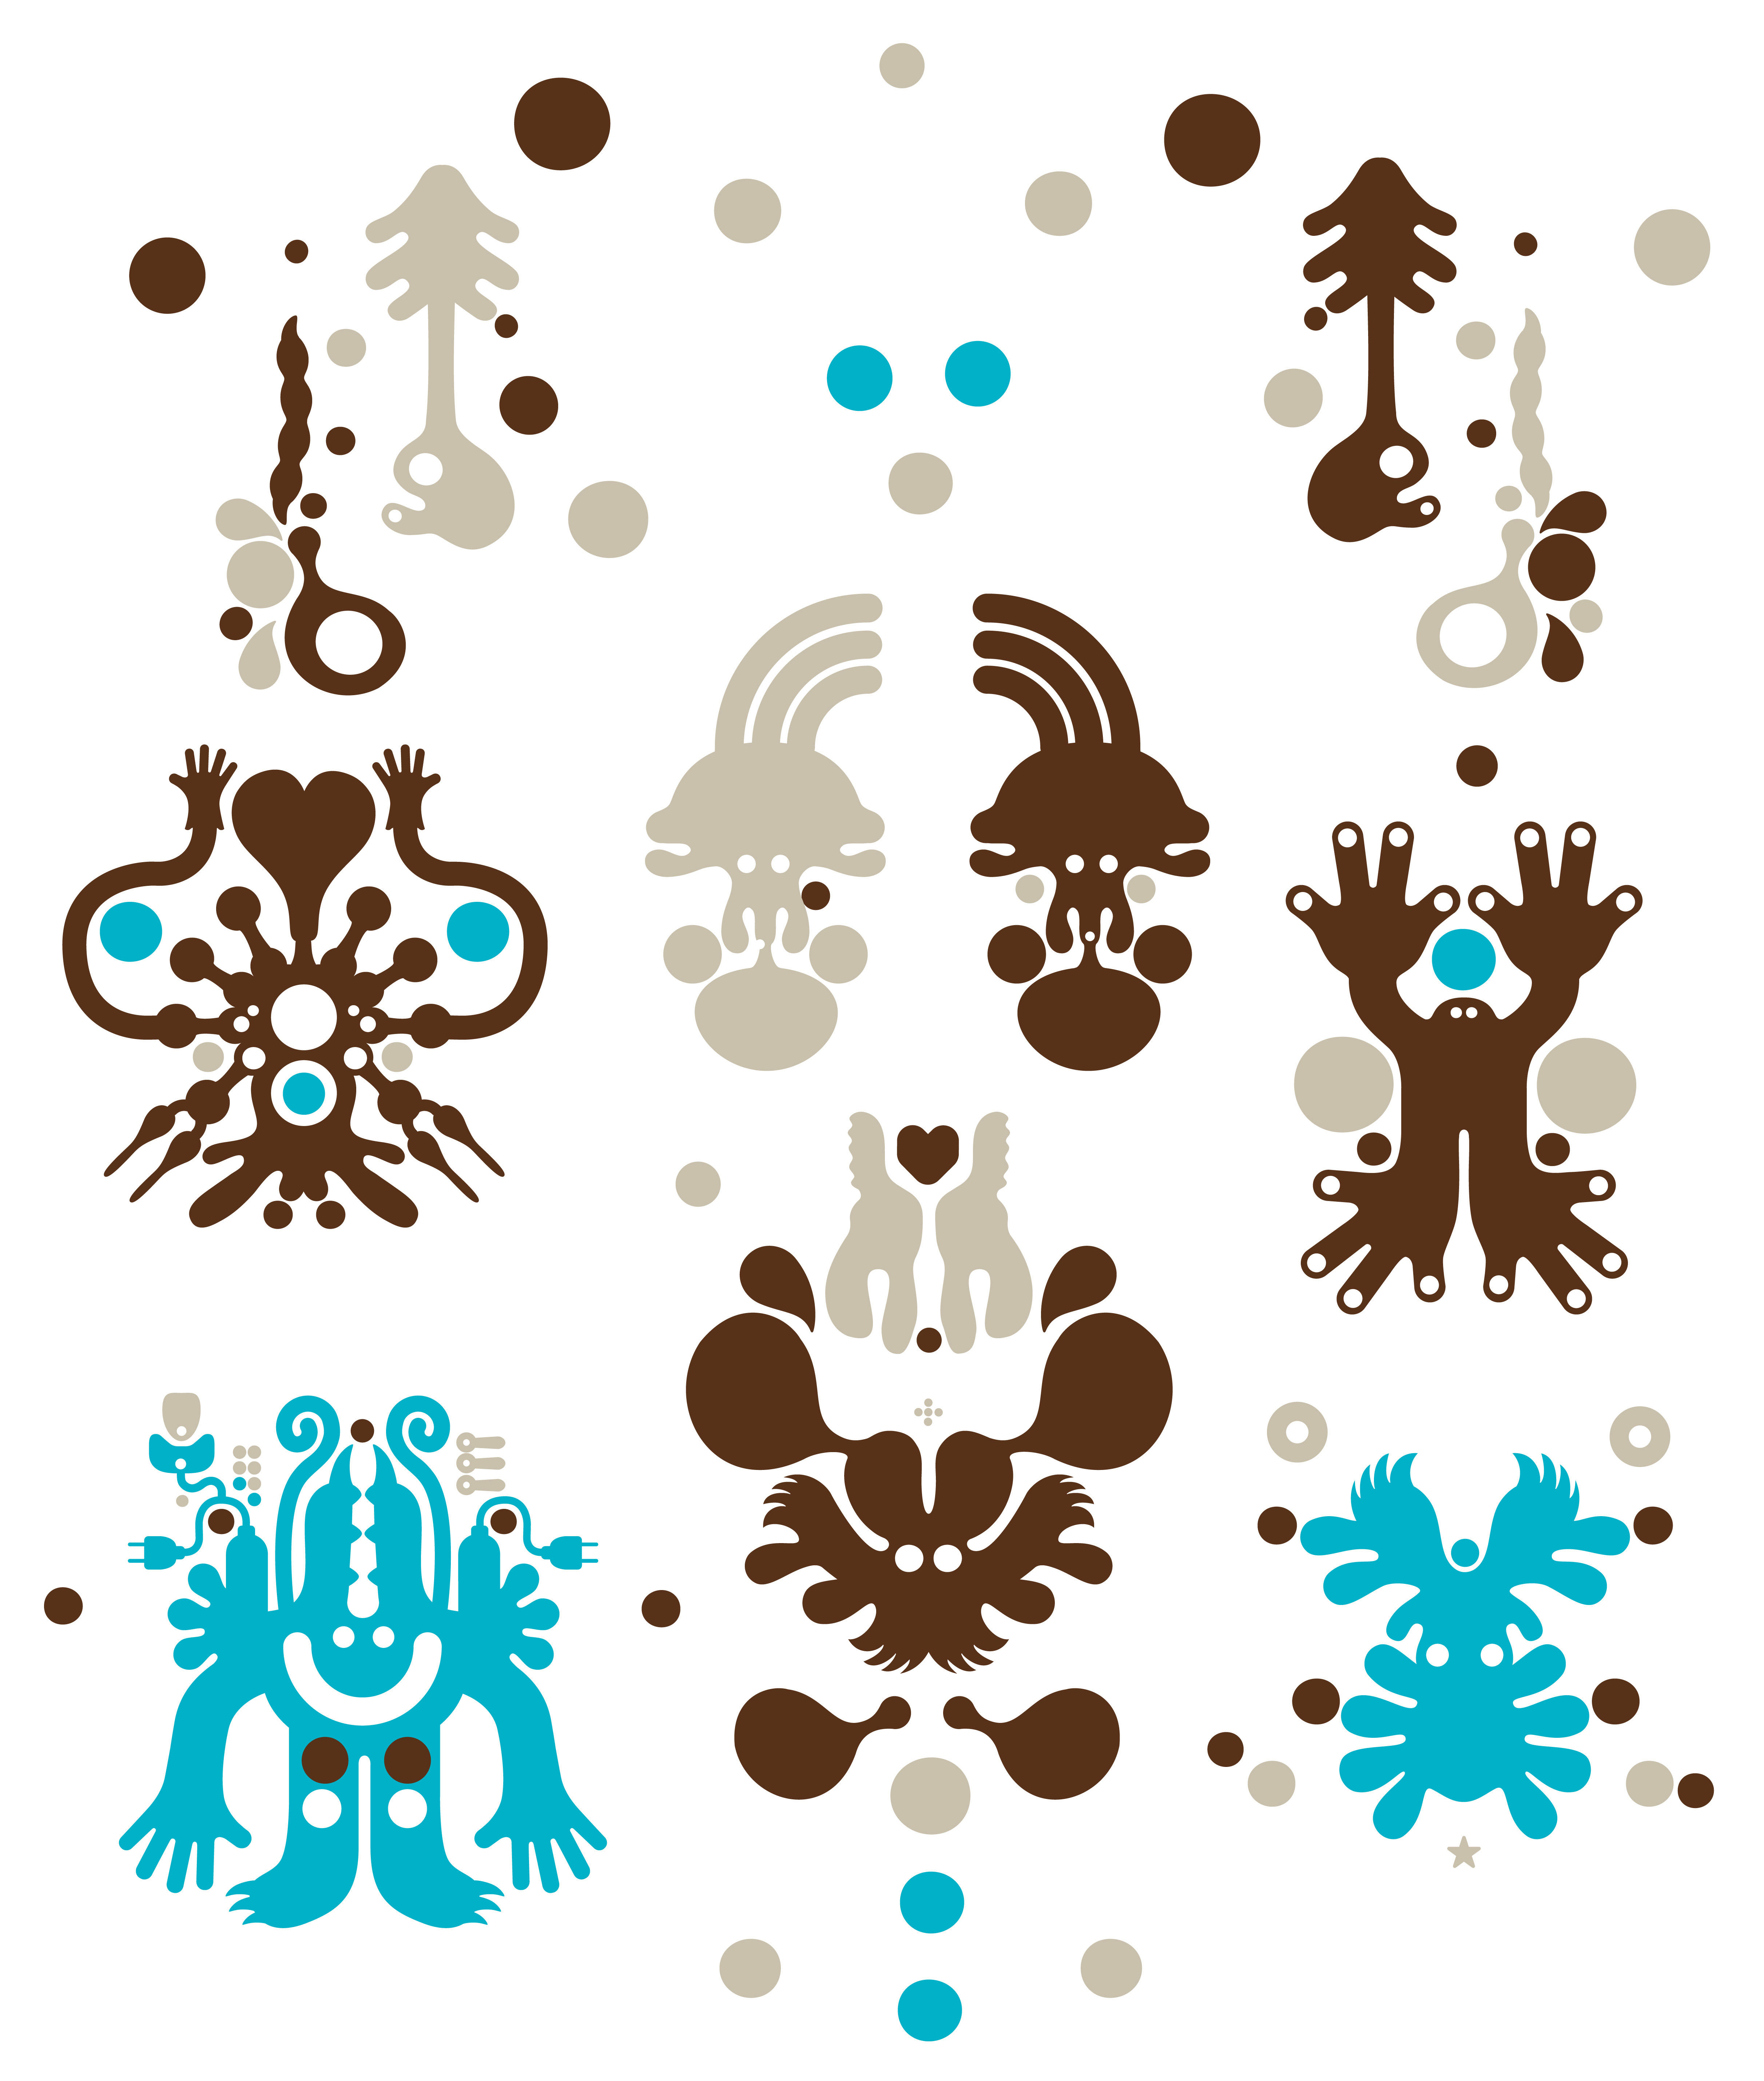 Déco - Stickers, papiers peints & posters - Sticker Monster Forest Brown - Domestic - Marron - Vinyle